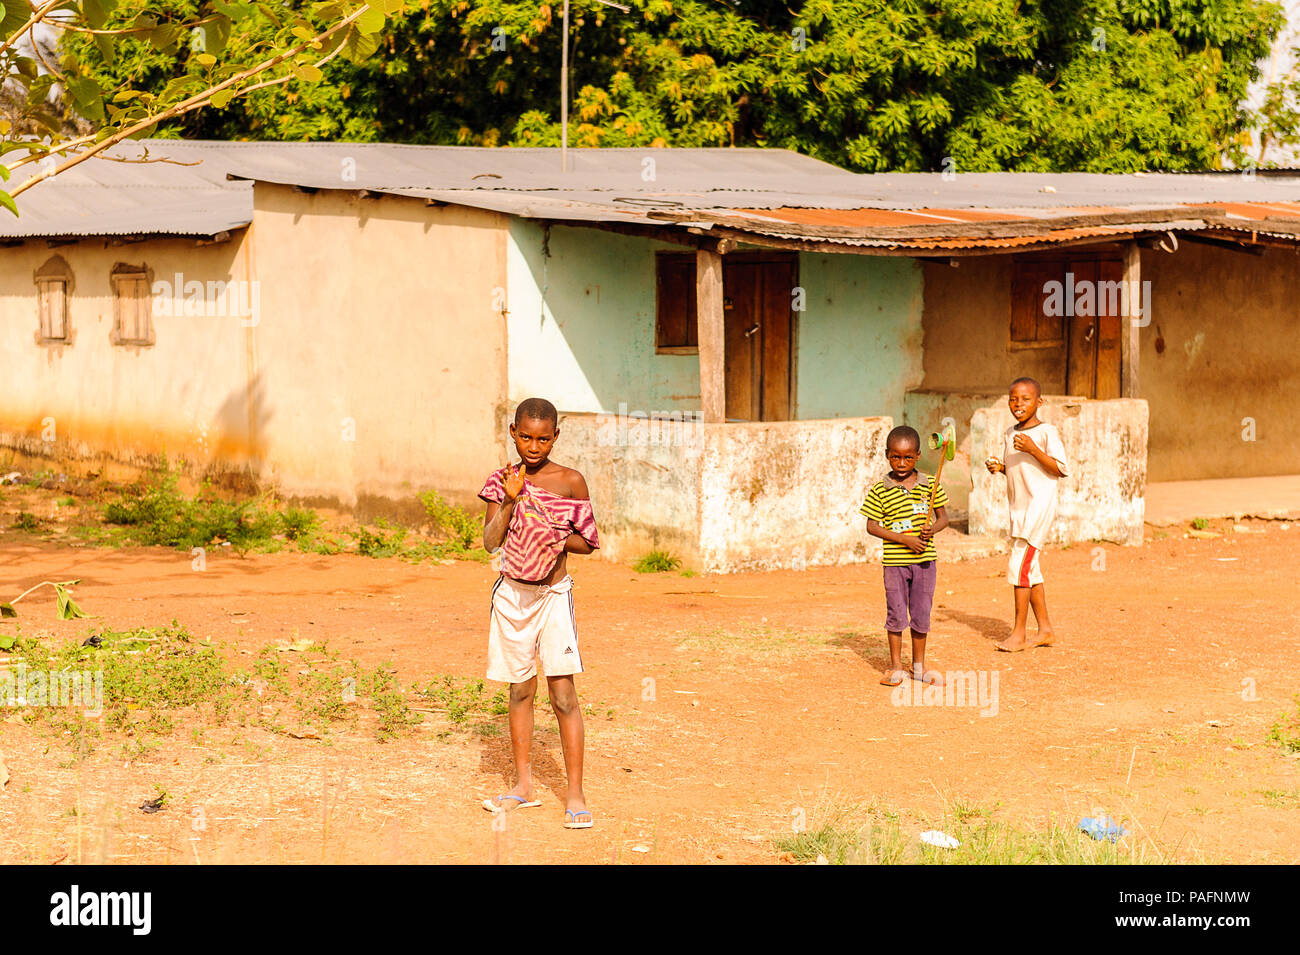 KARA, TOGO - MARCH 7, 2012: Unidentified Togolese children play in the yard  in Togo, Mar 7, 2012. People in Togo suffer of poverty due to unstable ec - Stock Image